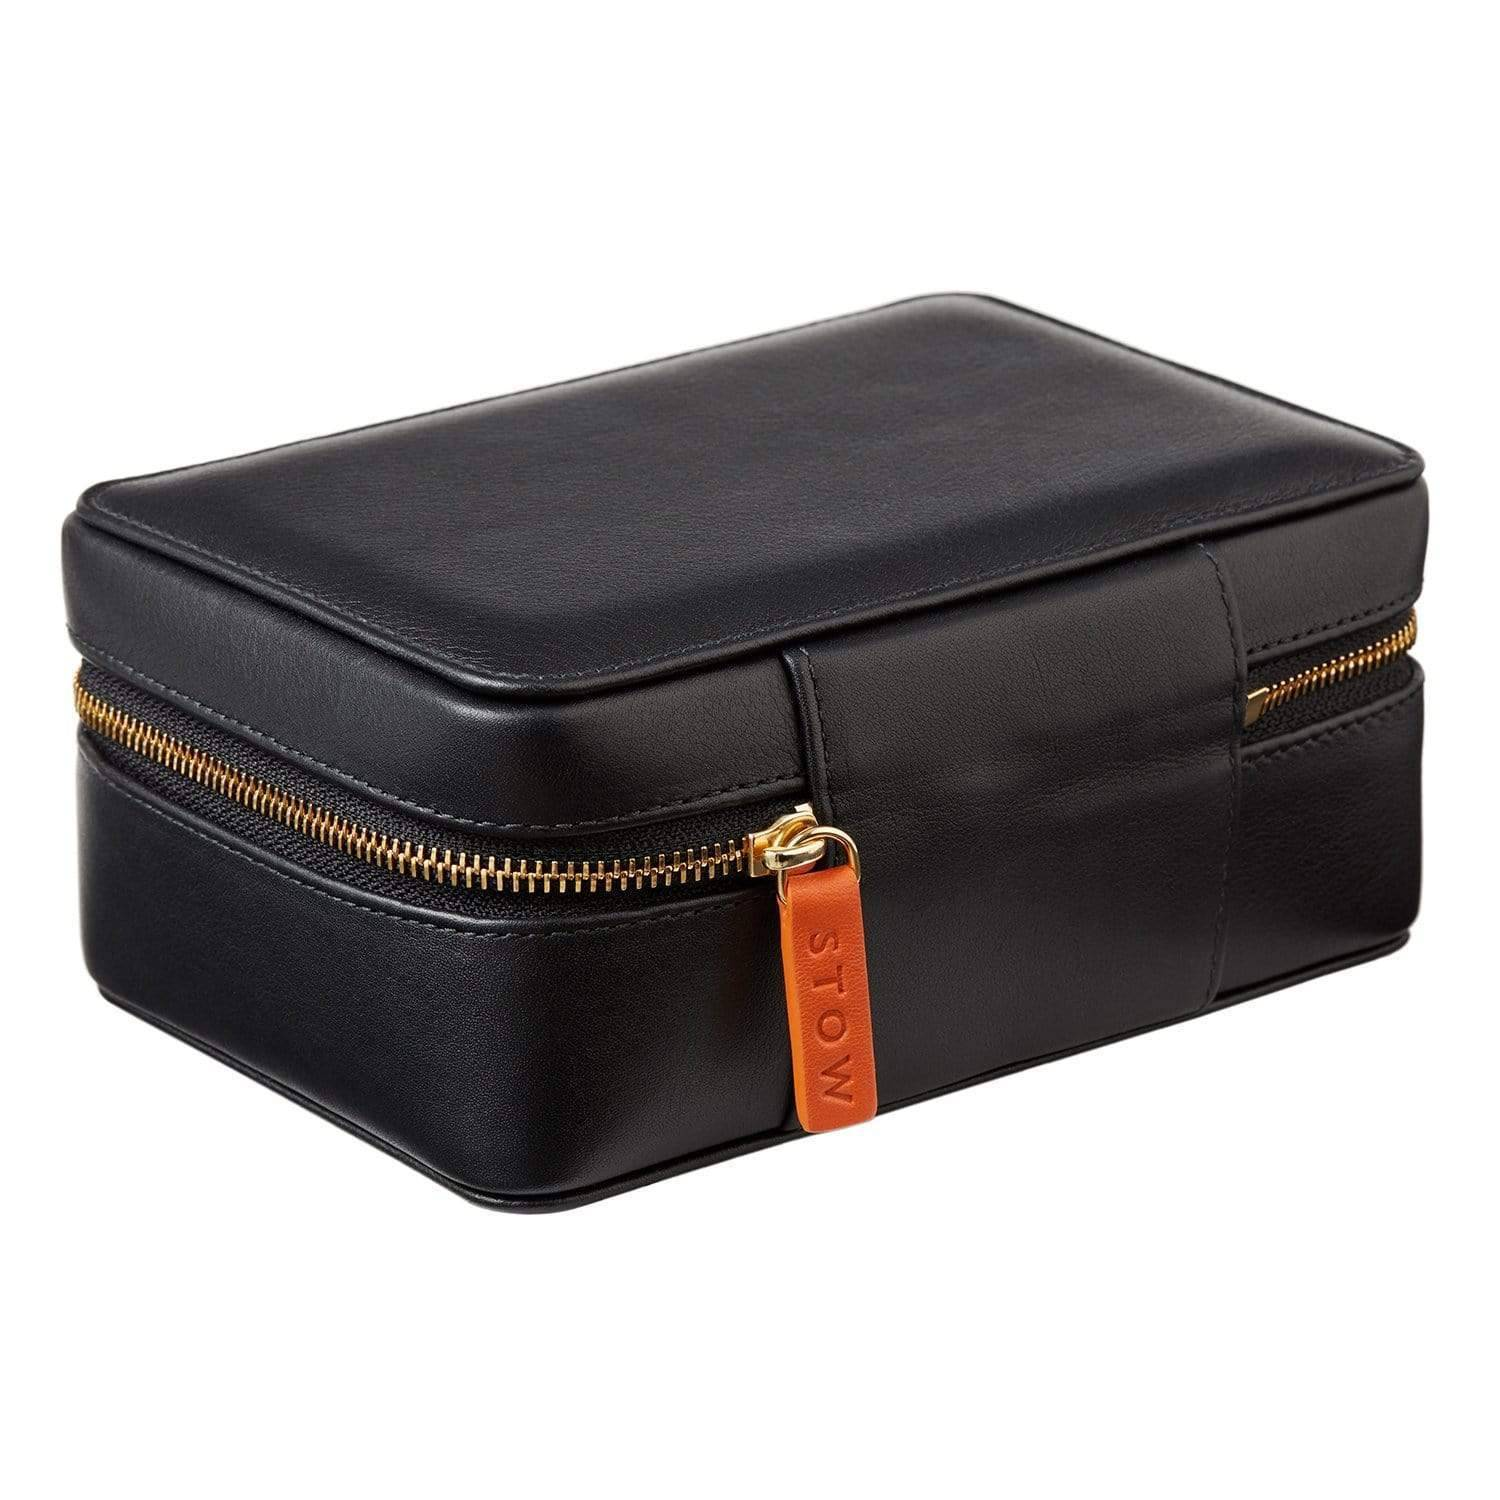 STOW Amelia Leather Jewellery Case - Personalized